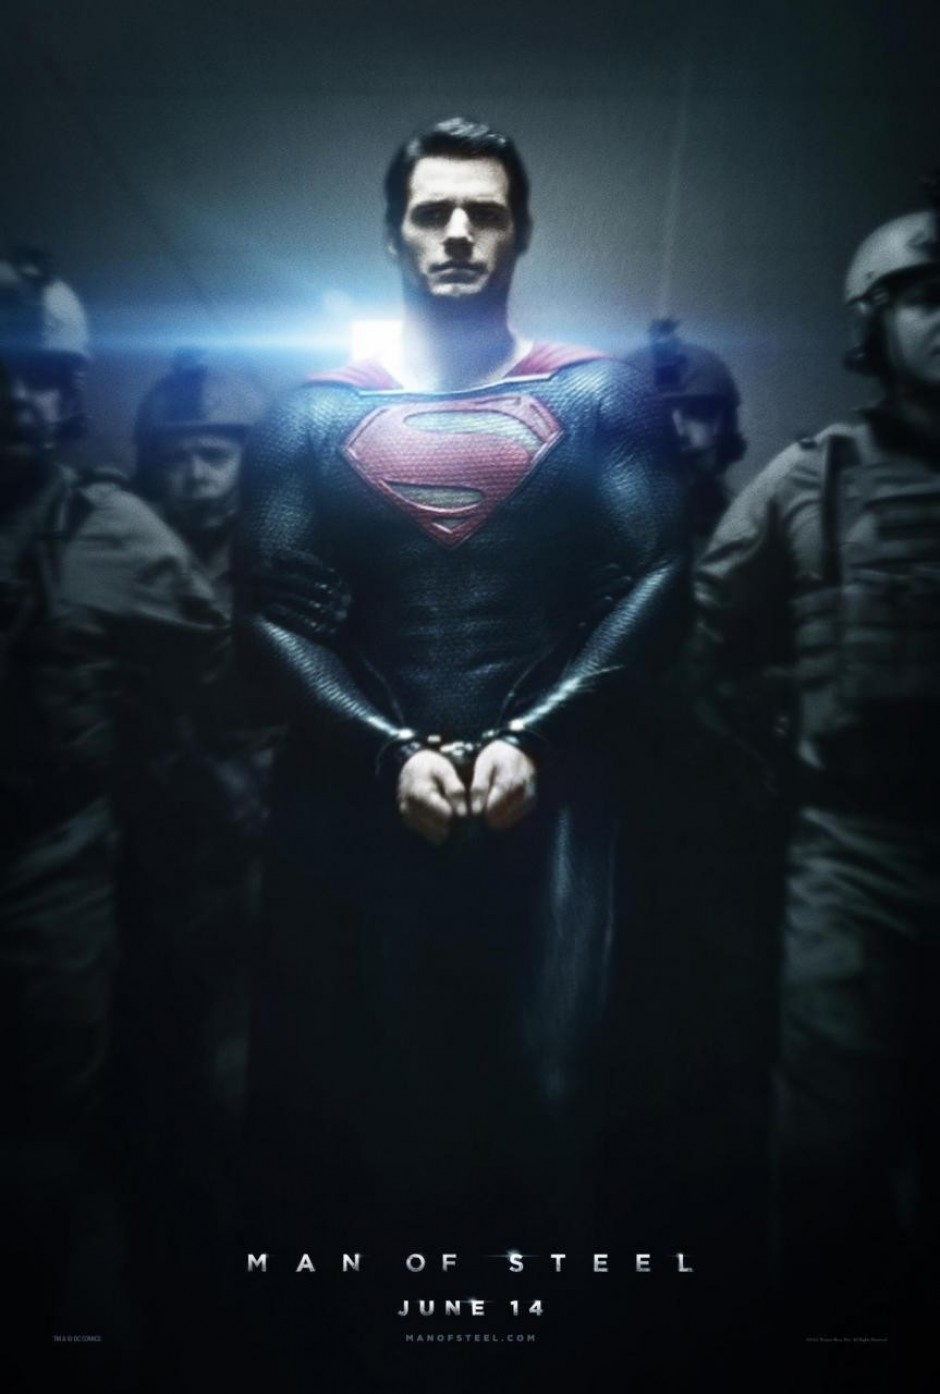 Man-of-Steel-Movie-2013-Poster.jpg